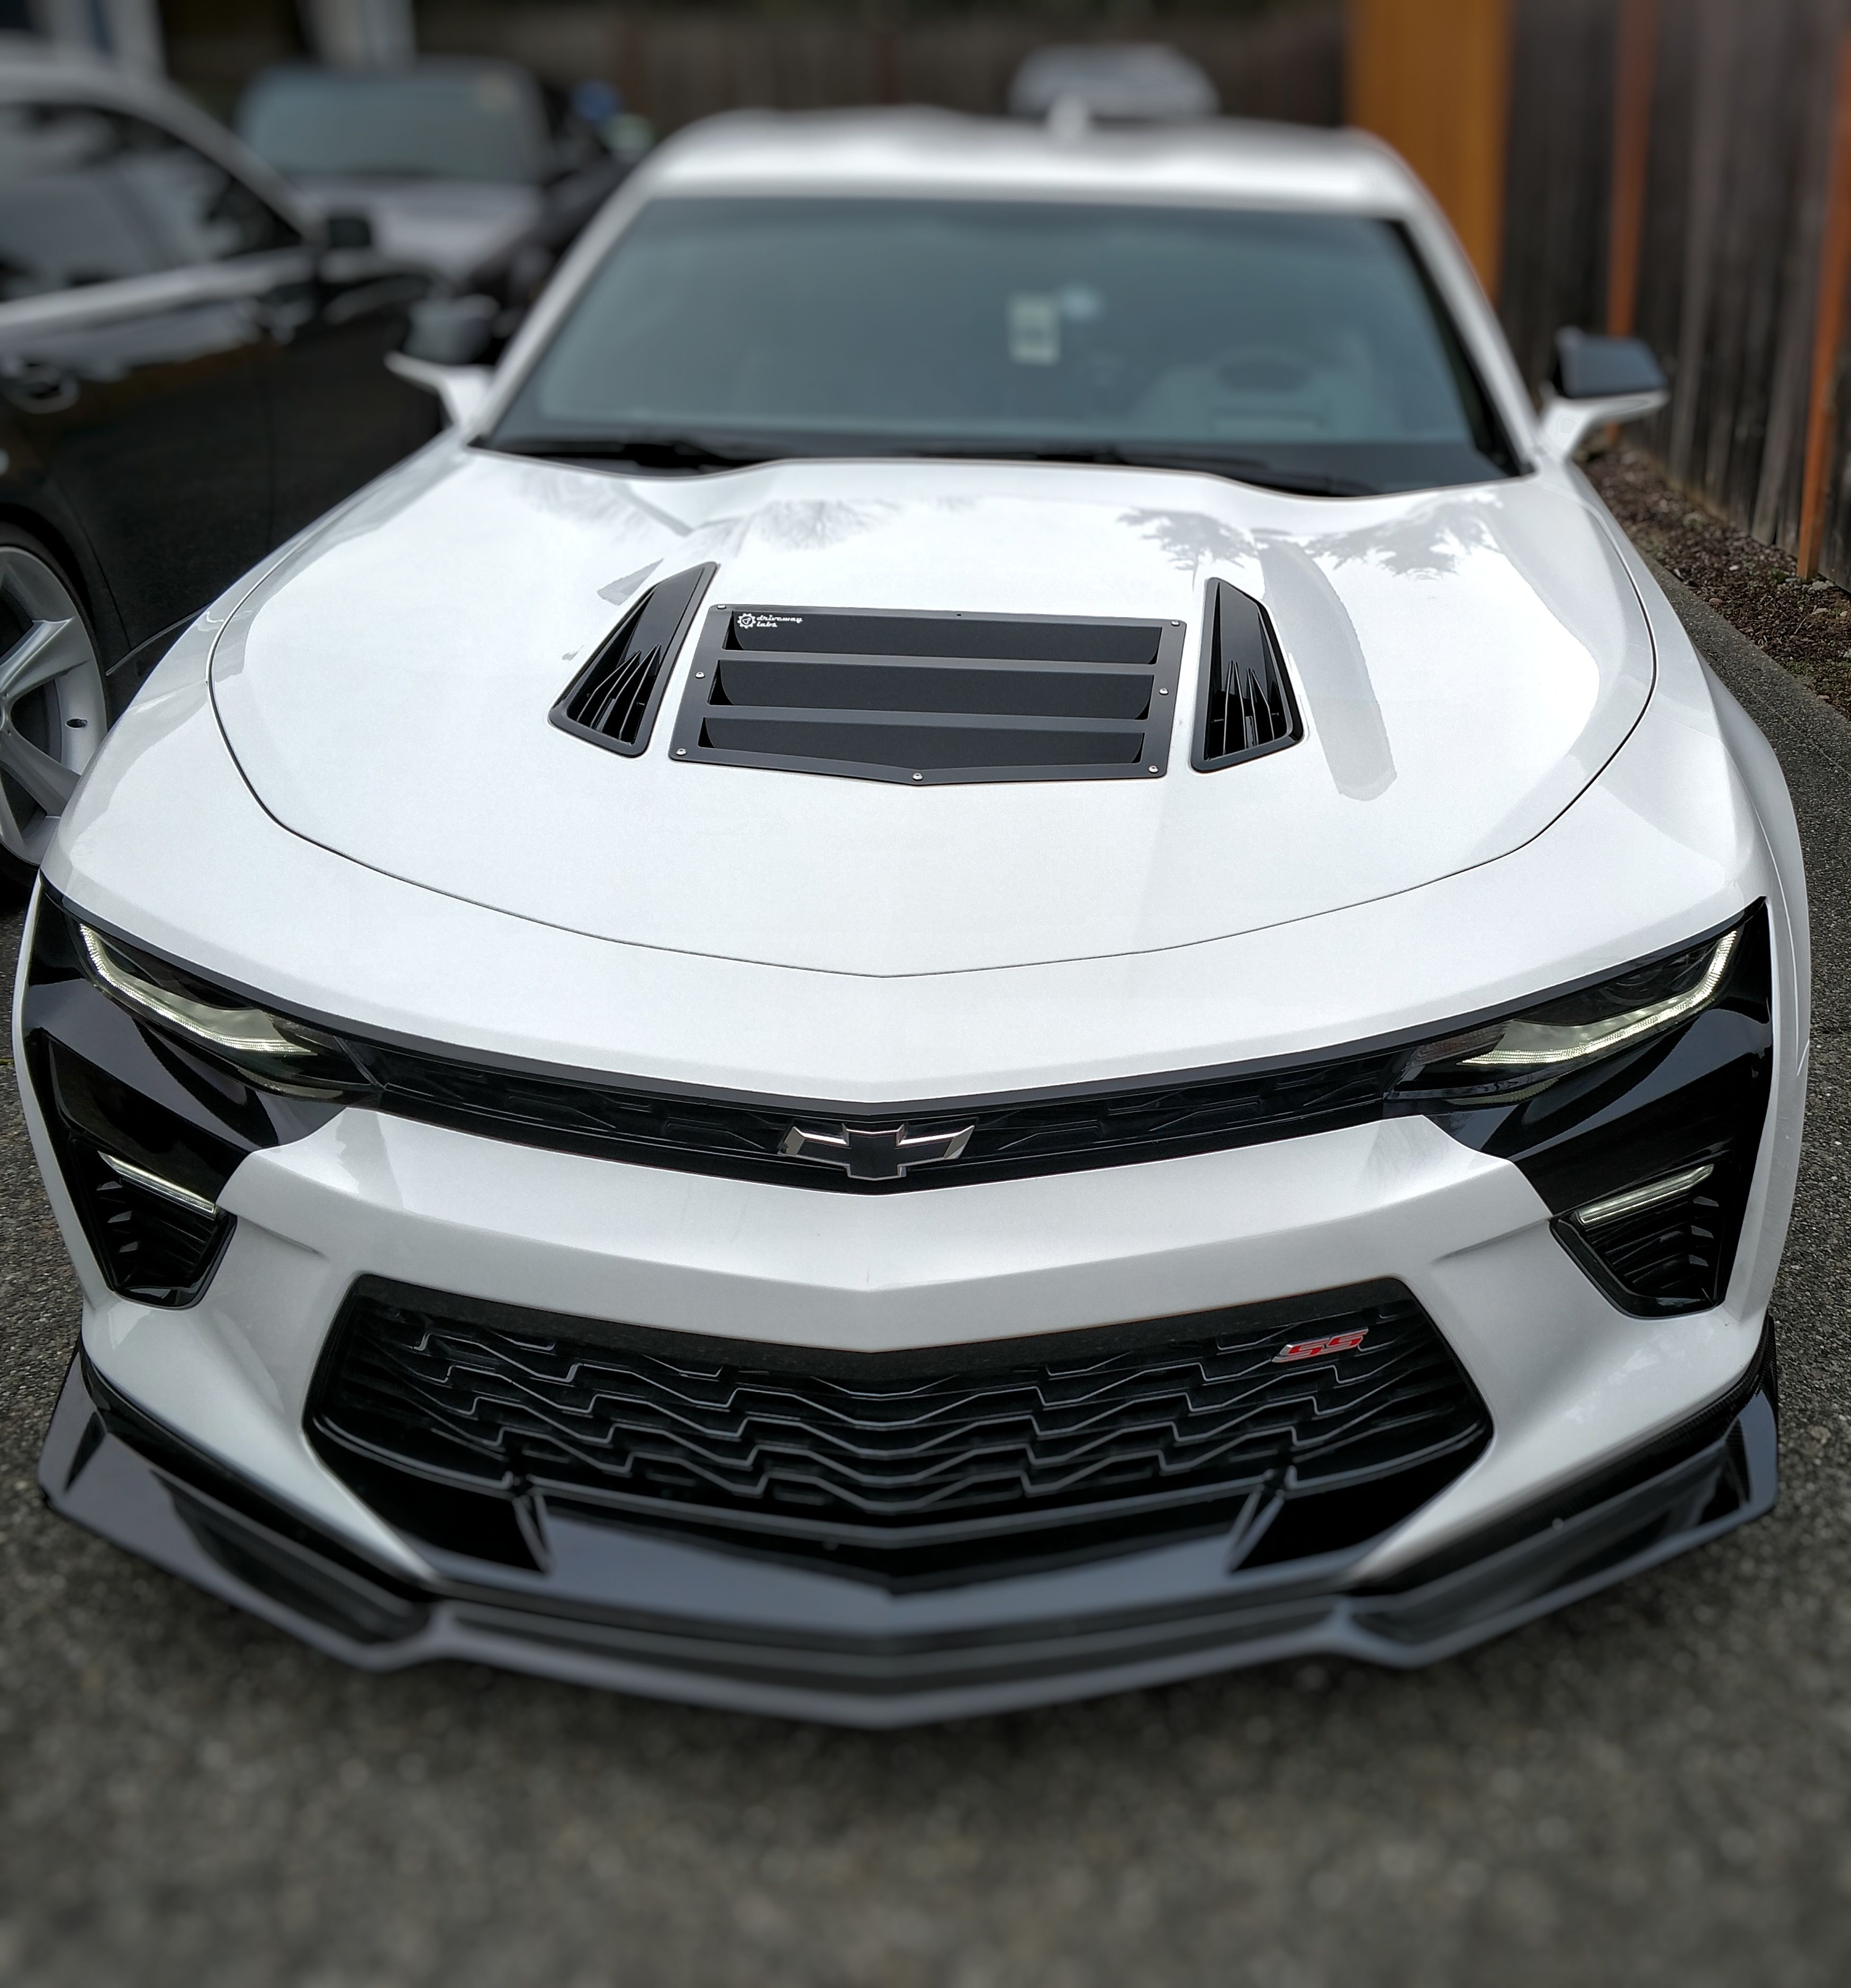 anderson composites carbon fiber front lip installed on my 2016 summit white camaro ss - Camaro 2016 Ss White